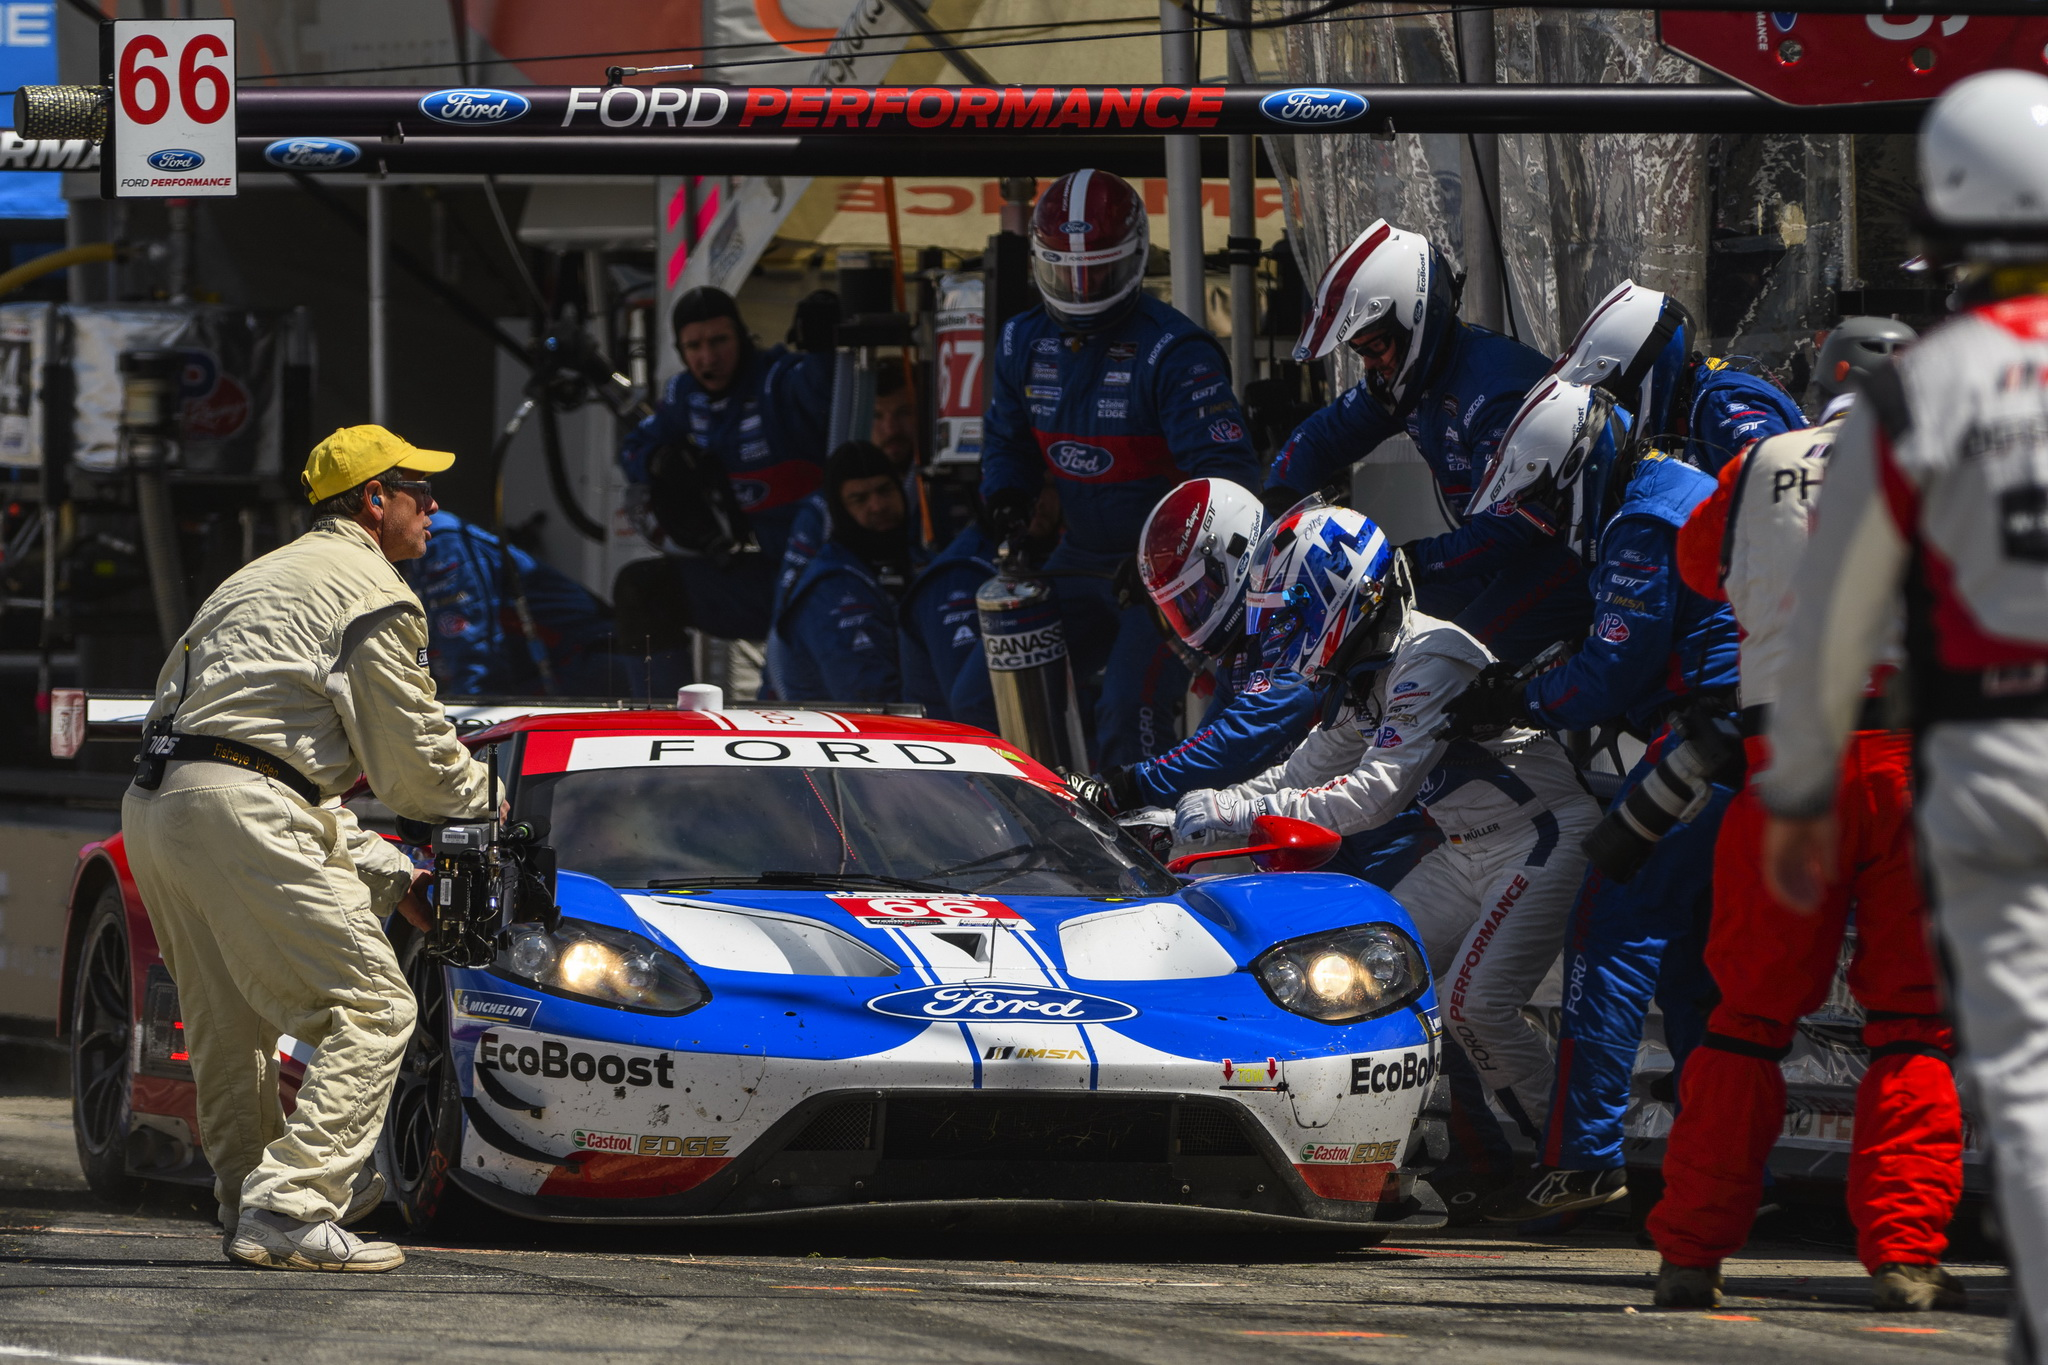 Challenging Conditions, Interclass Contact Leads to Disappointing Finish for Ford Chip Ganassi Racing